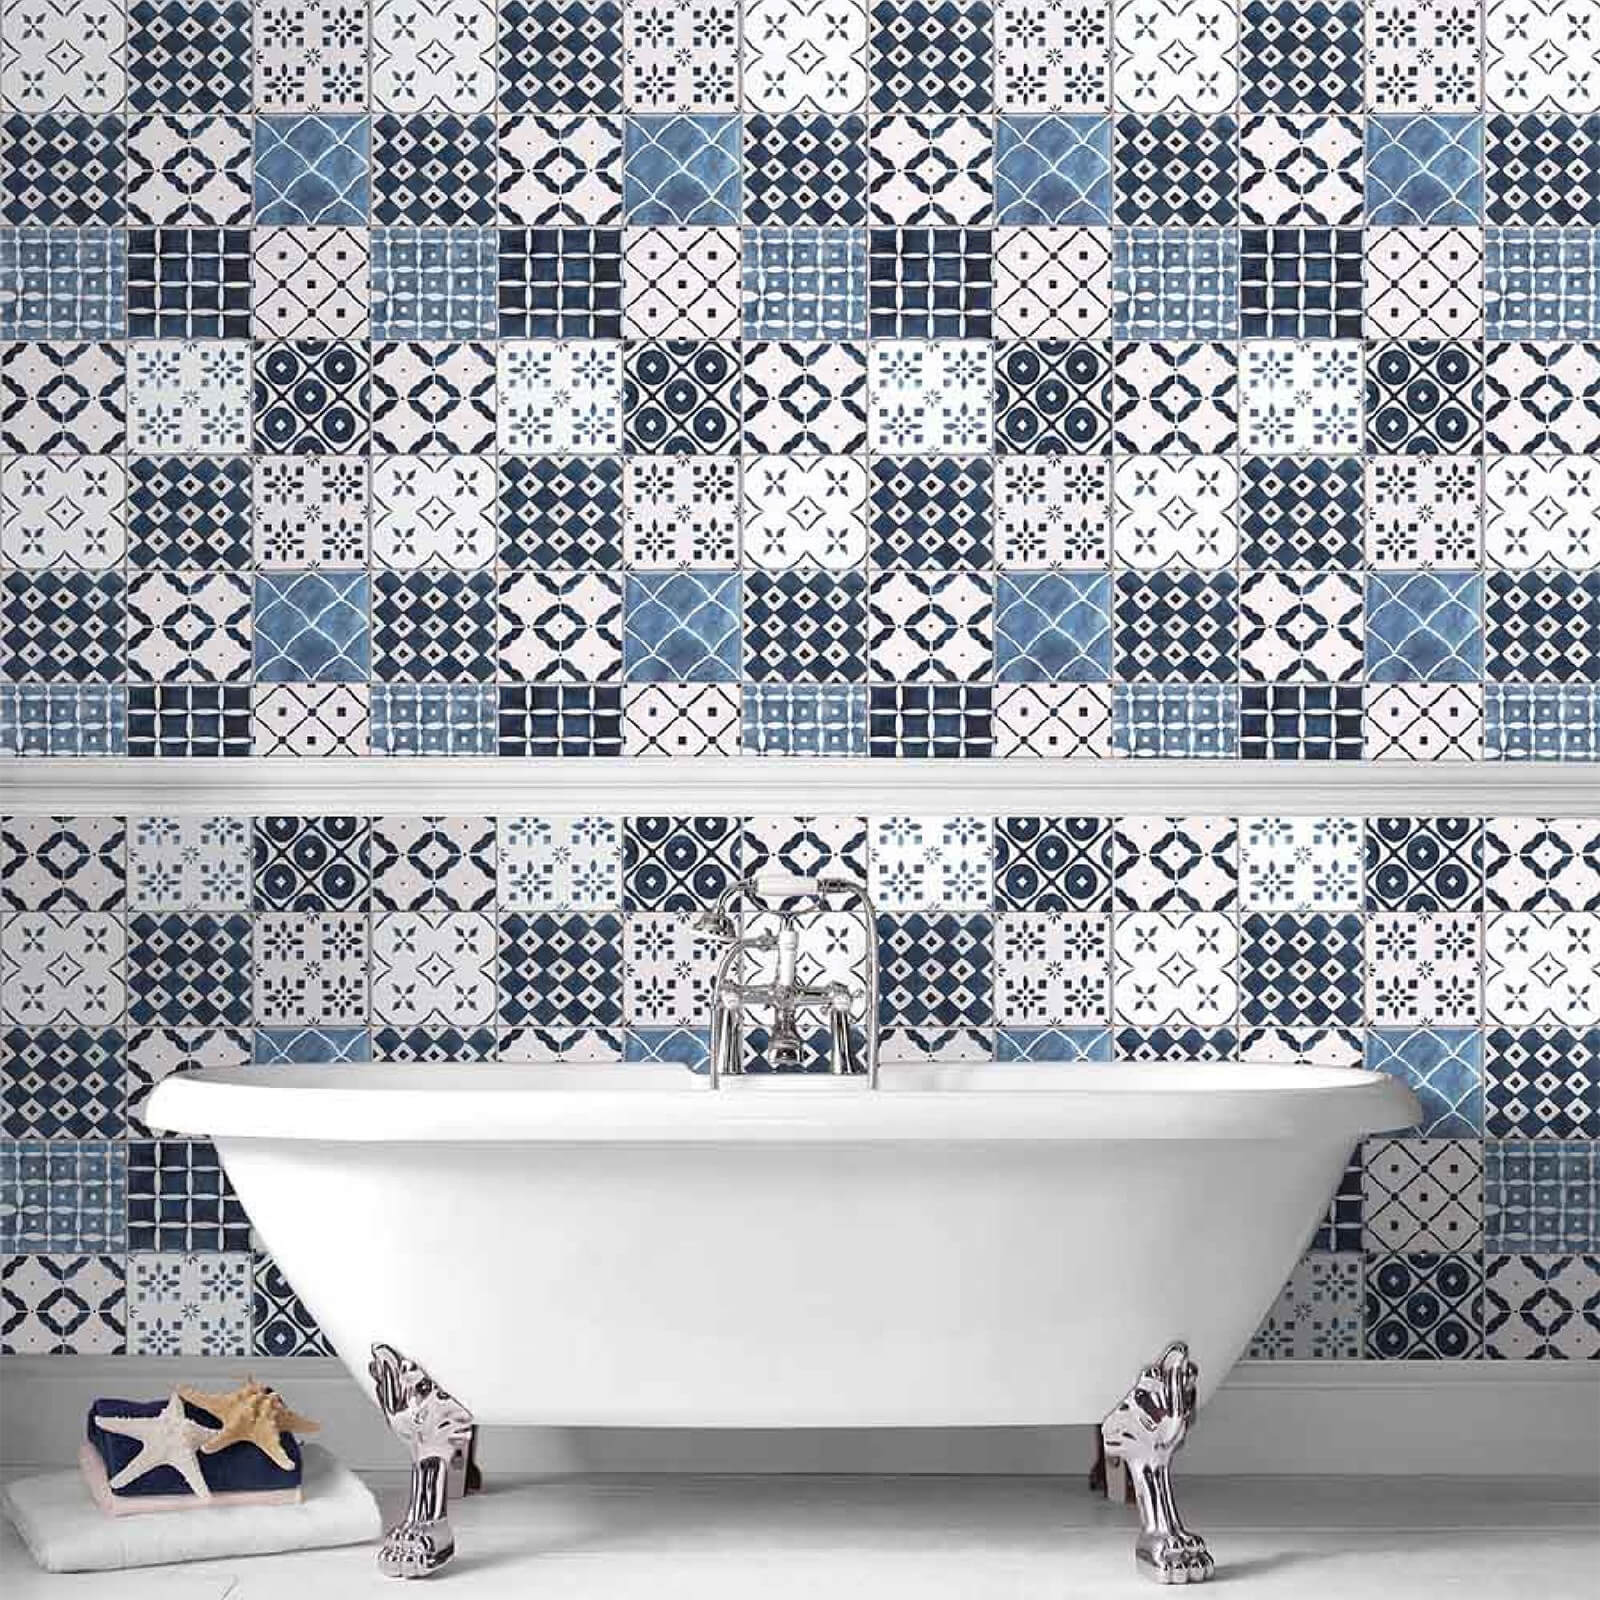 Contour Blue White Porches Tiled Bathroom Kitchen Wallpaper Iwoot